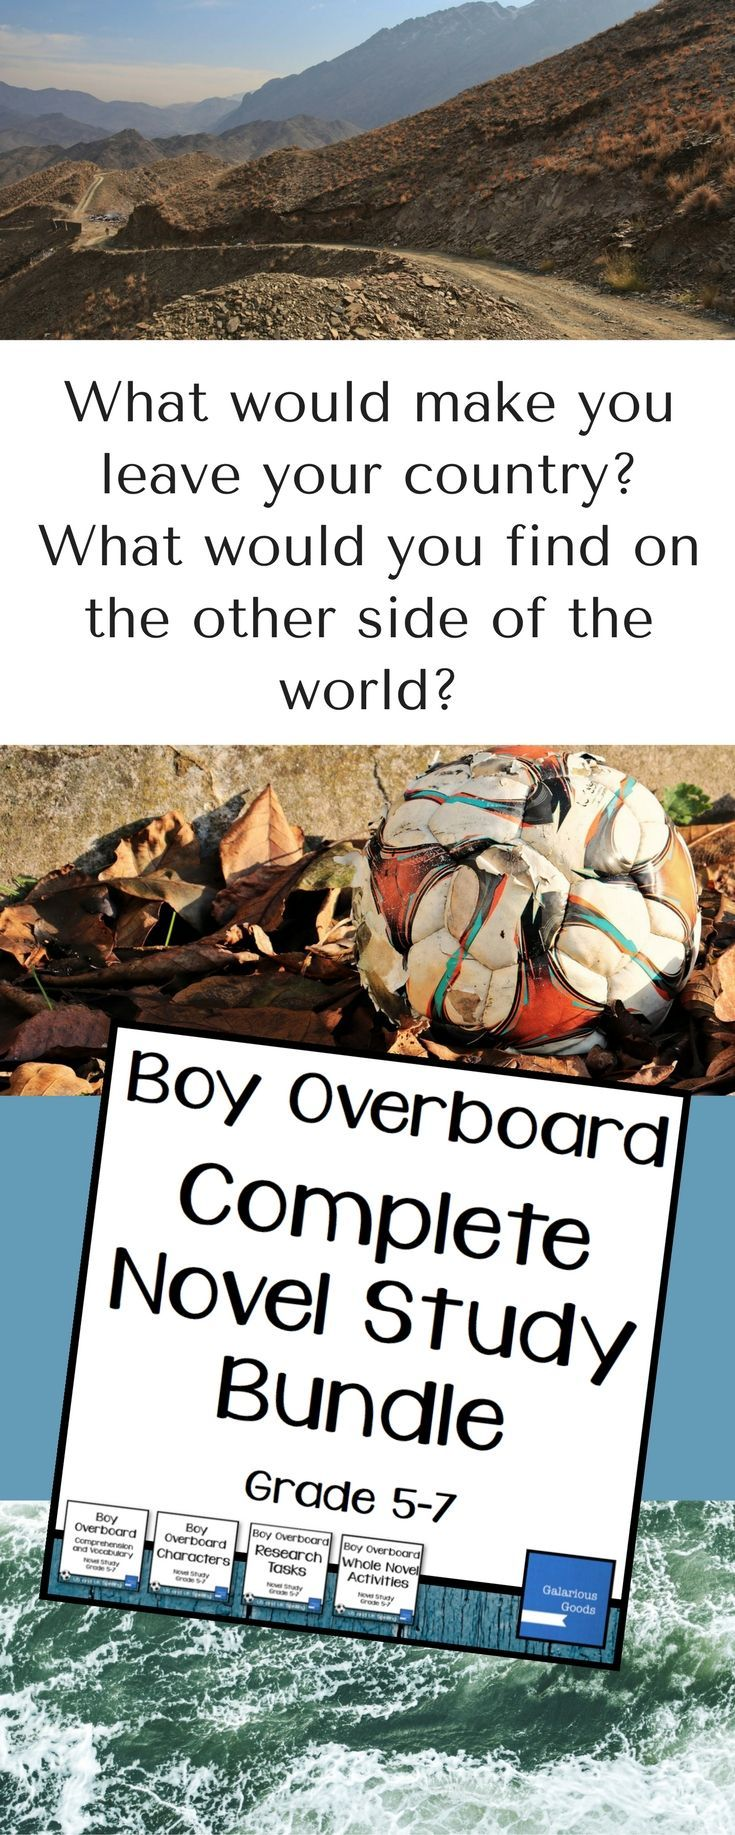 Get Comprehension, Vocabulary, Characters, Research and Whole Novel activities and tasks with this complete novel study for Boy Overboard by Morris Gleitzman